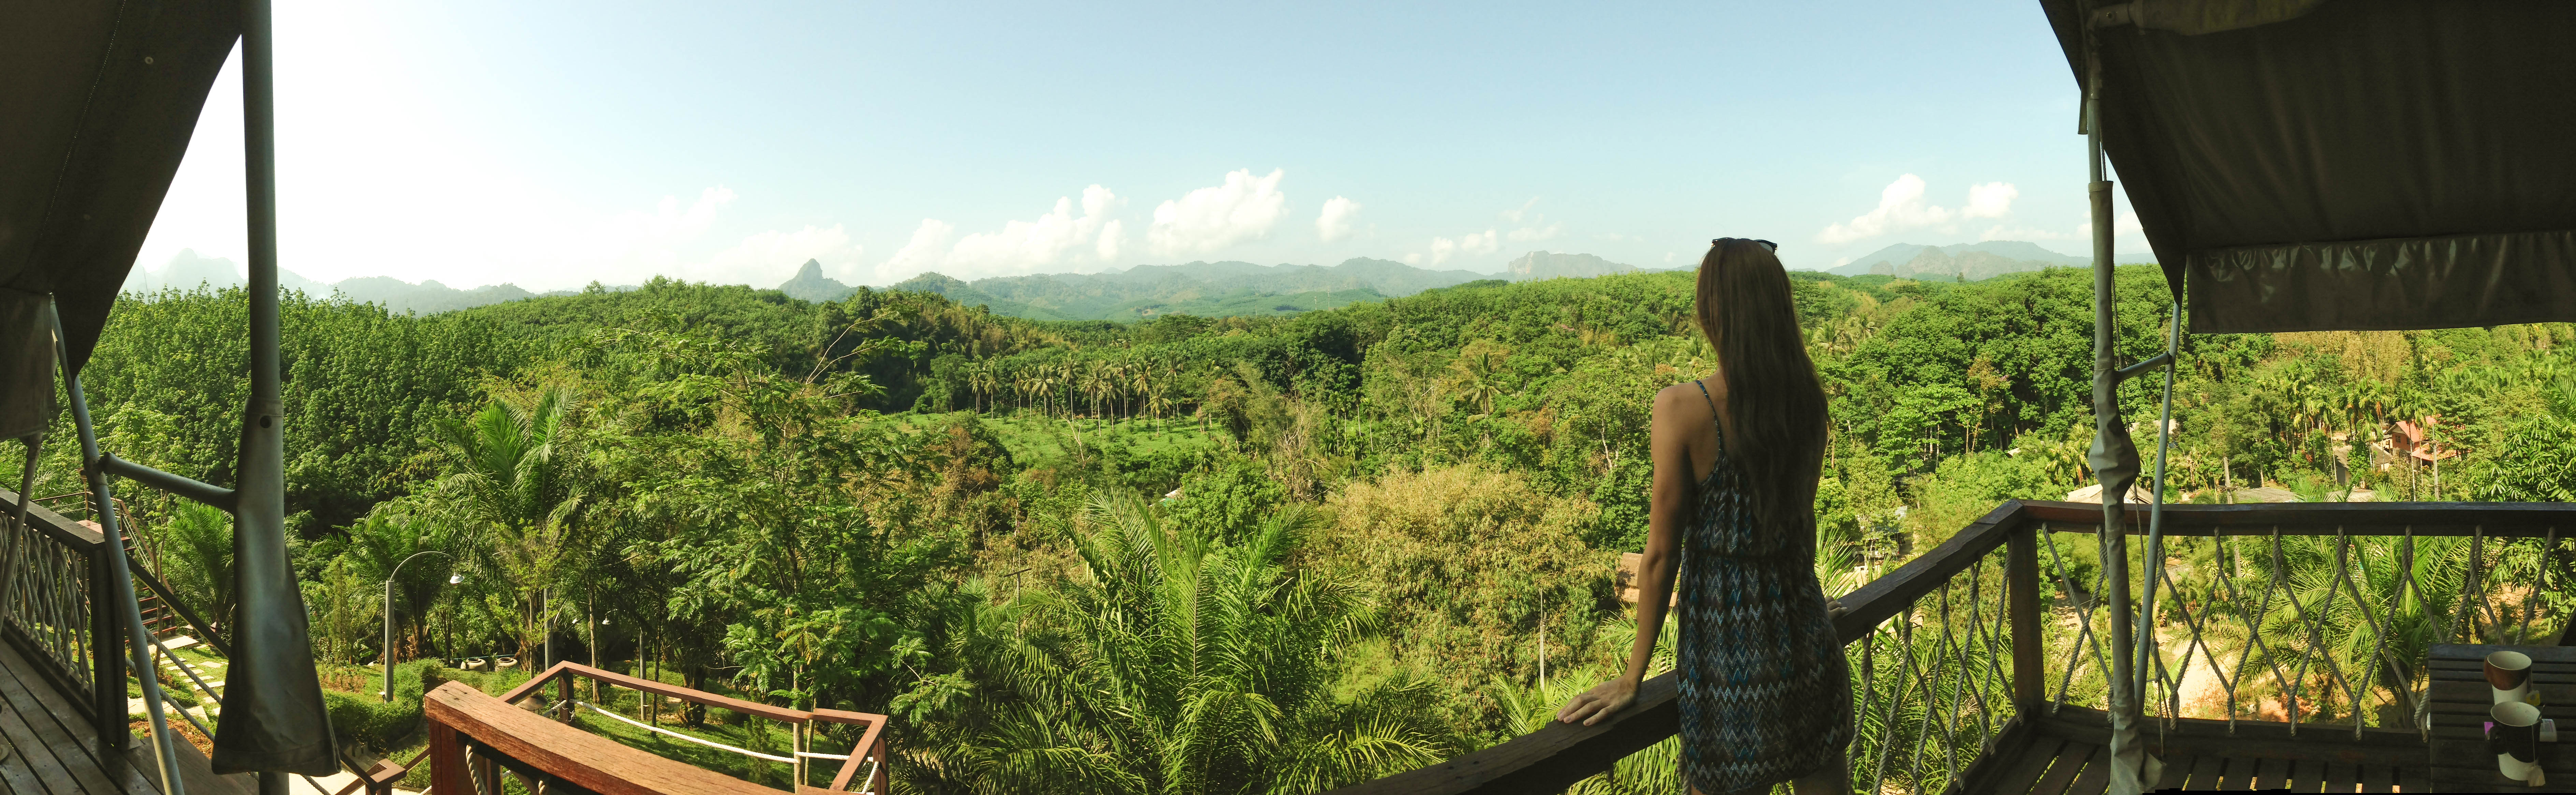 girl looking over walley thailand.